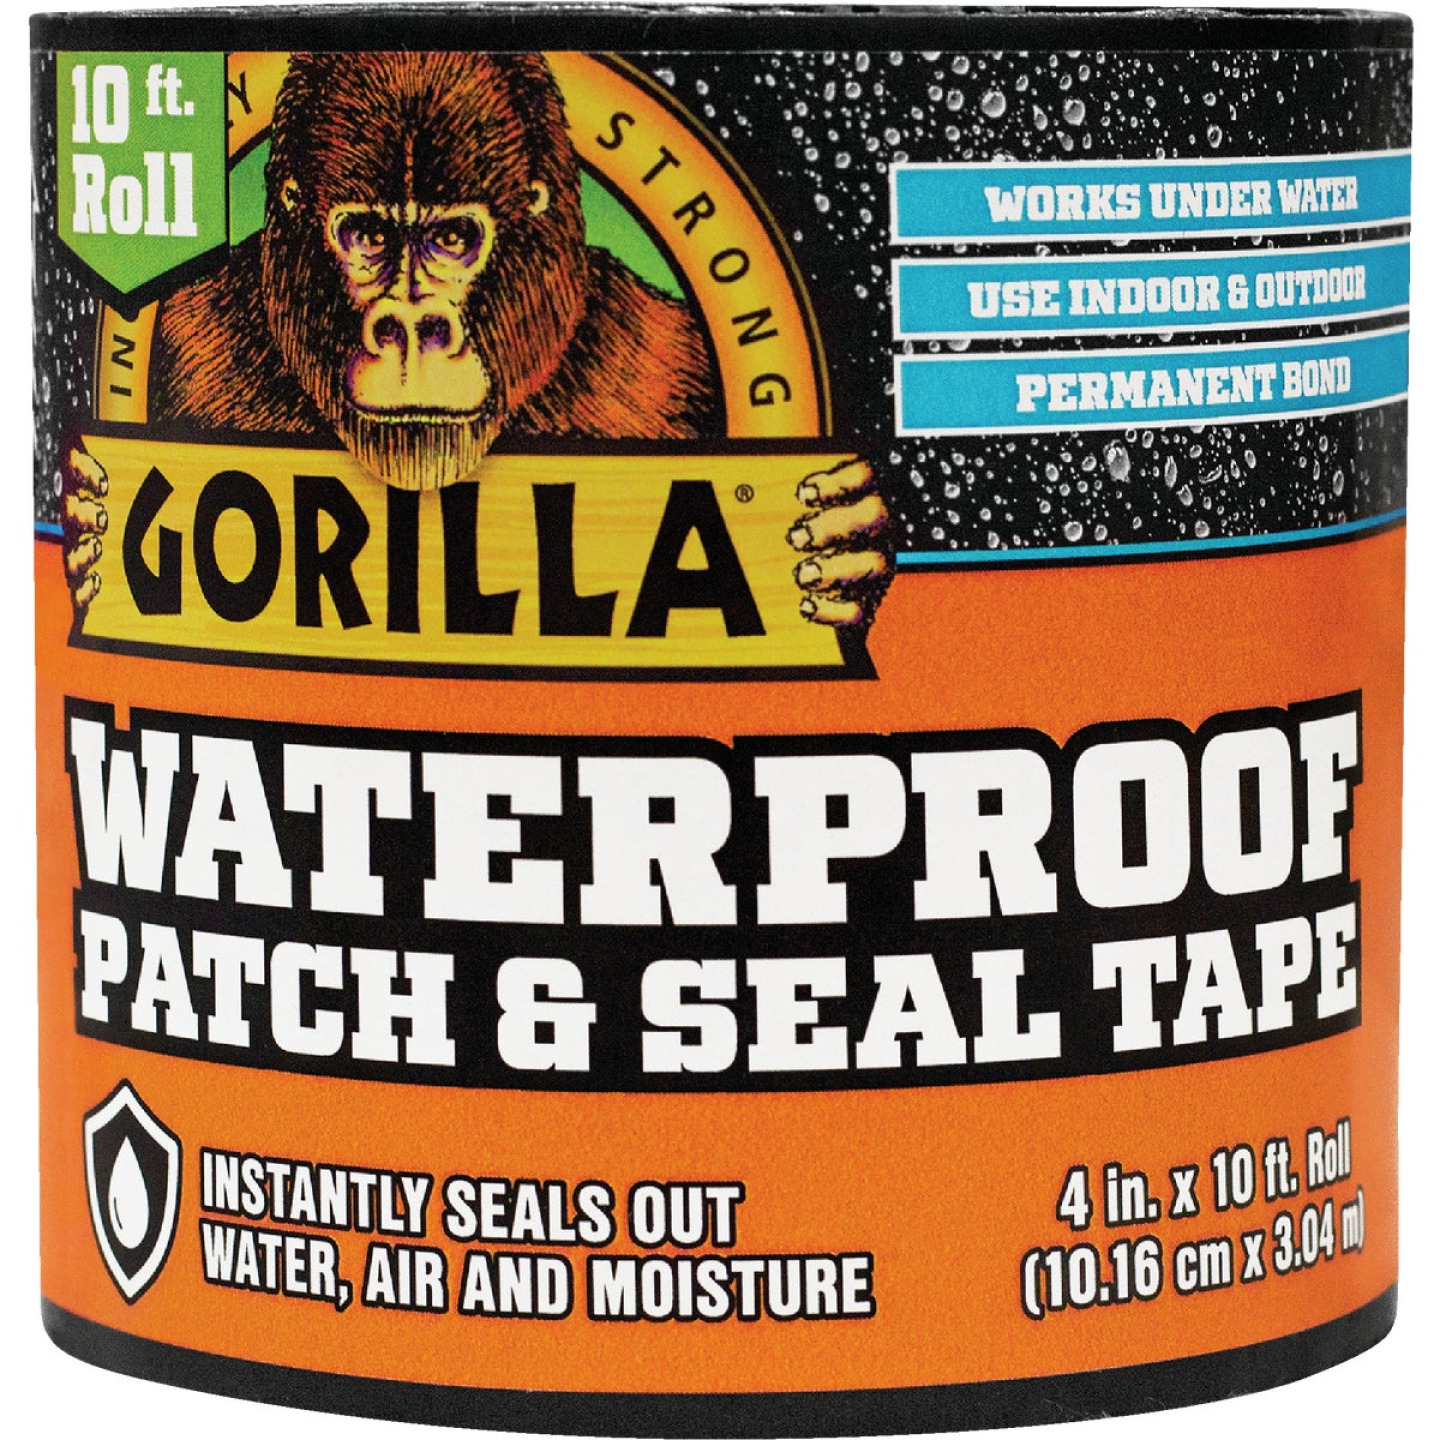 Gorilla 4 In. x 10 Ft. Waterproof Patch & Seal Repair Tape, Black Image 1